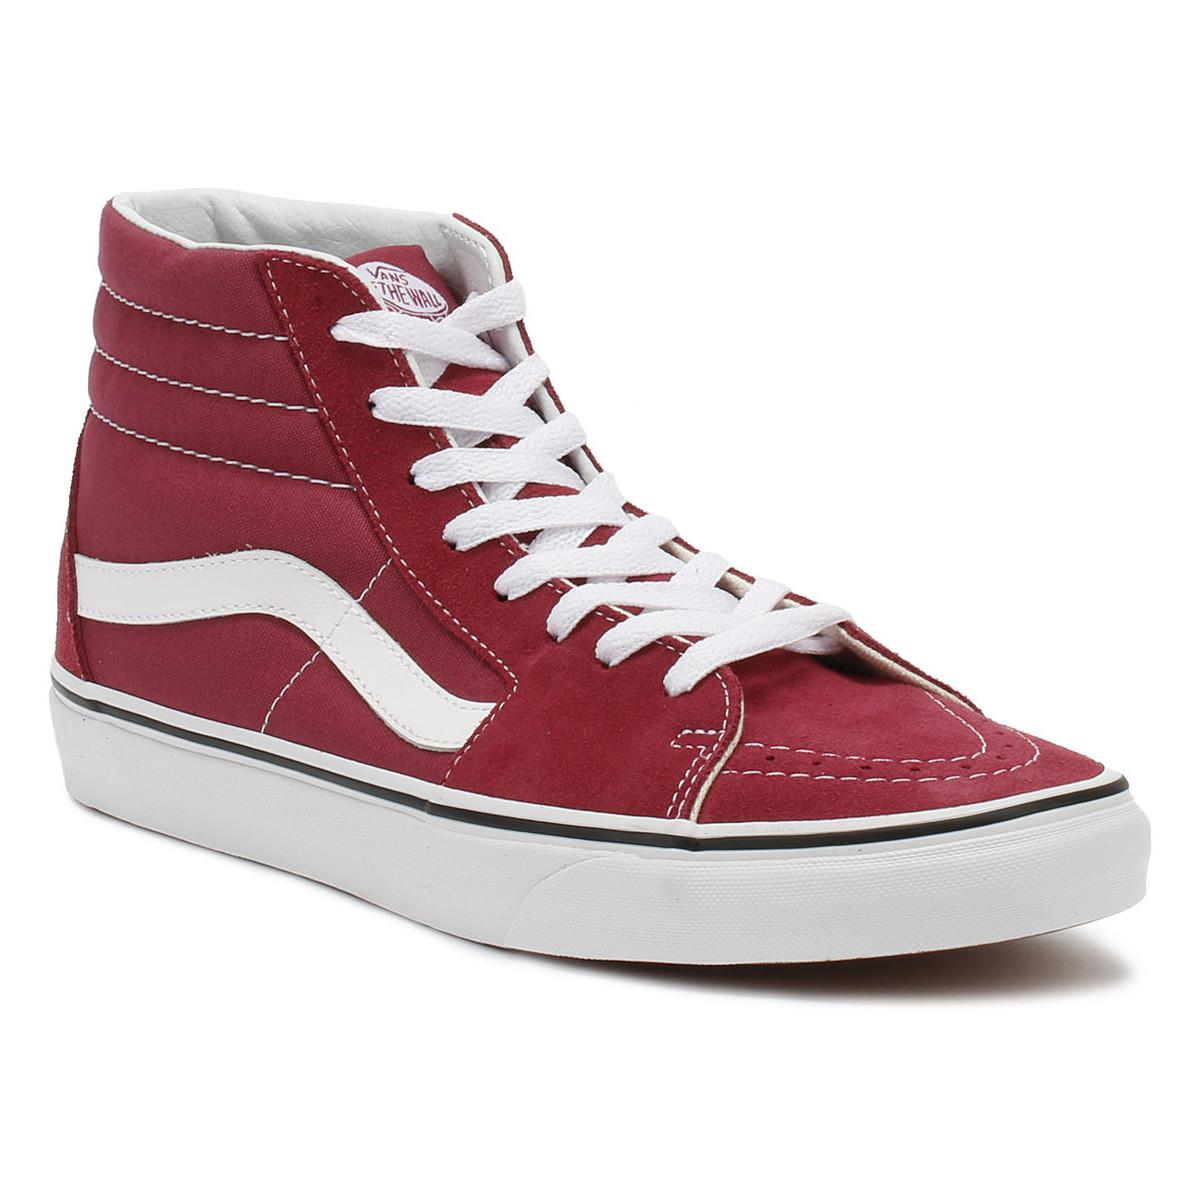 14a34e70d7d Vans. Dry Rose Red   True White Sk8-hi Trainers Women s Shoes (high-top ...